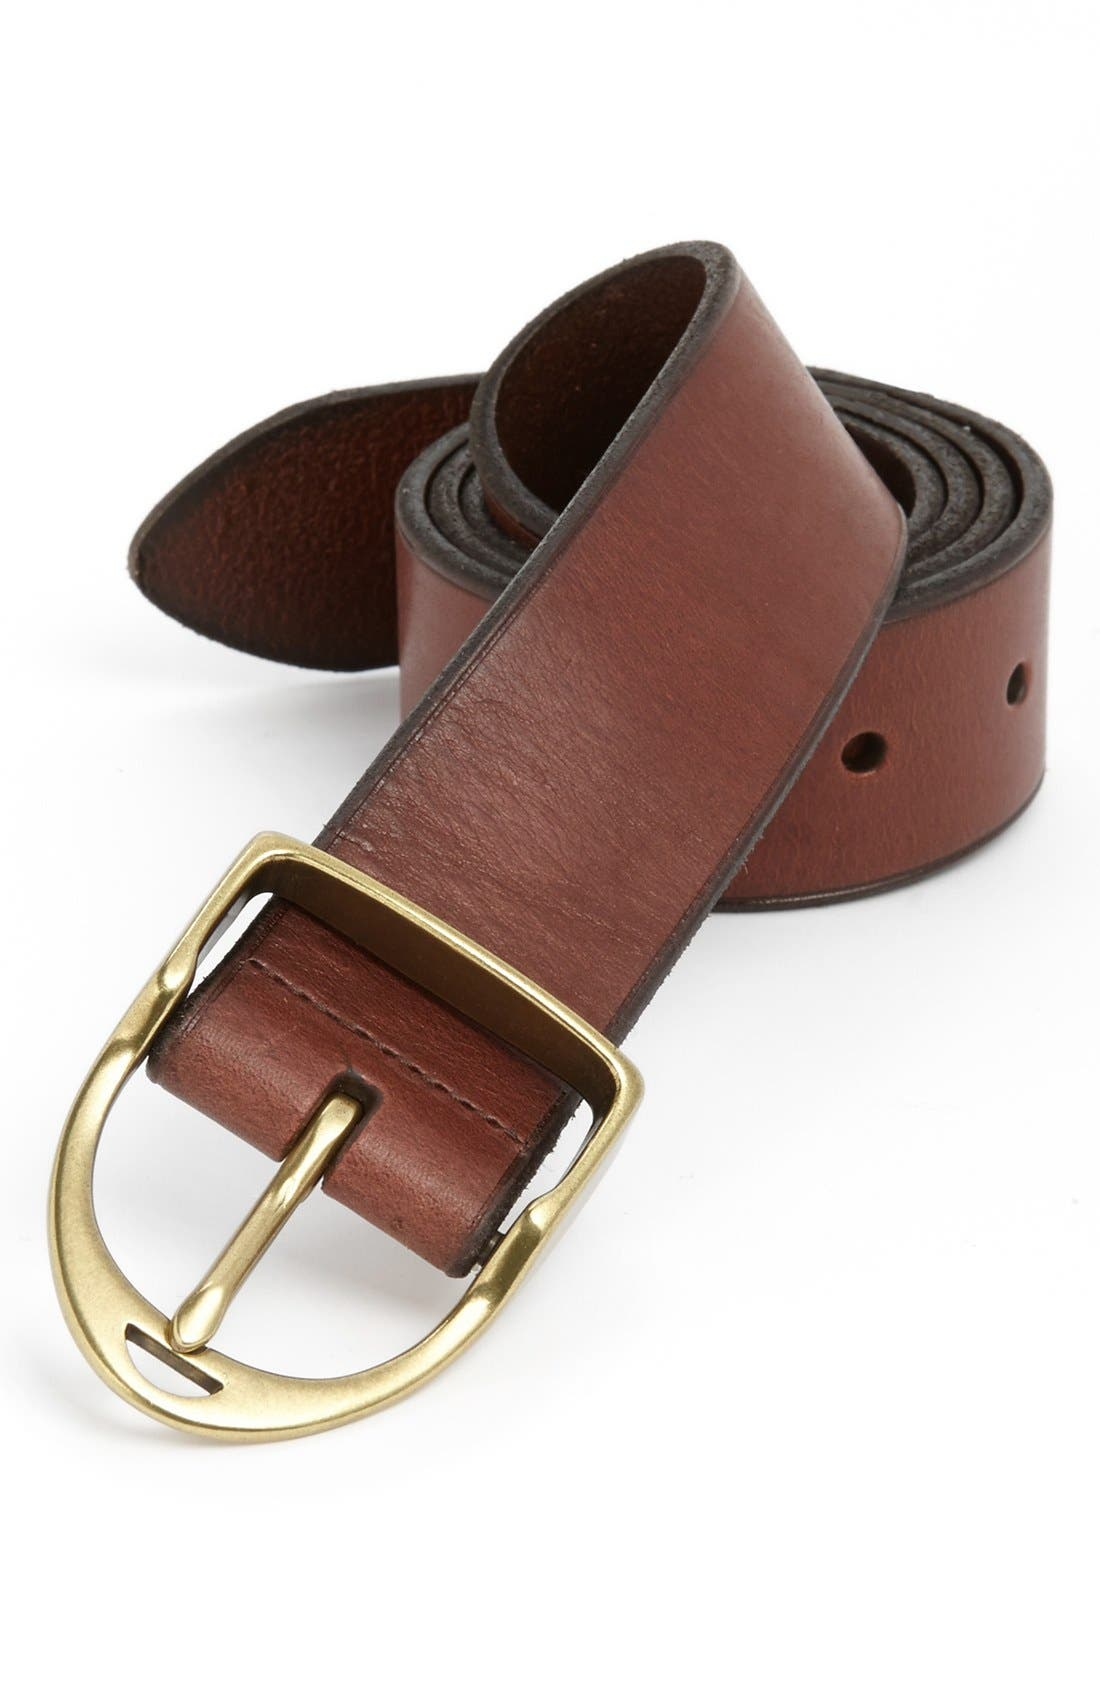 Alternate Image 1 Selected - Polo Ralph Lauren 'Wilton' Belt